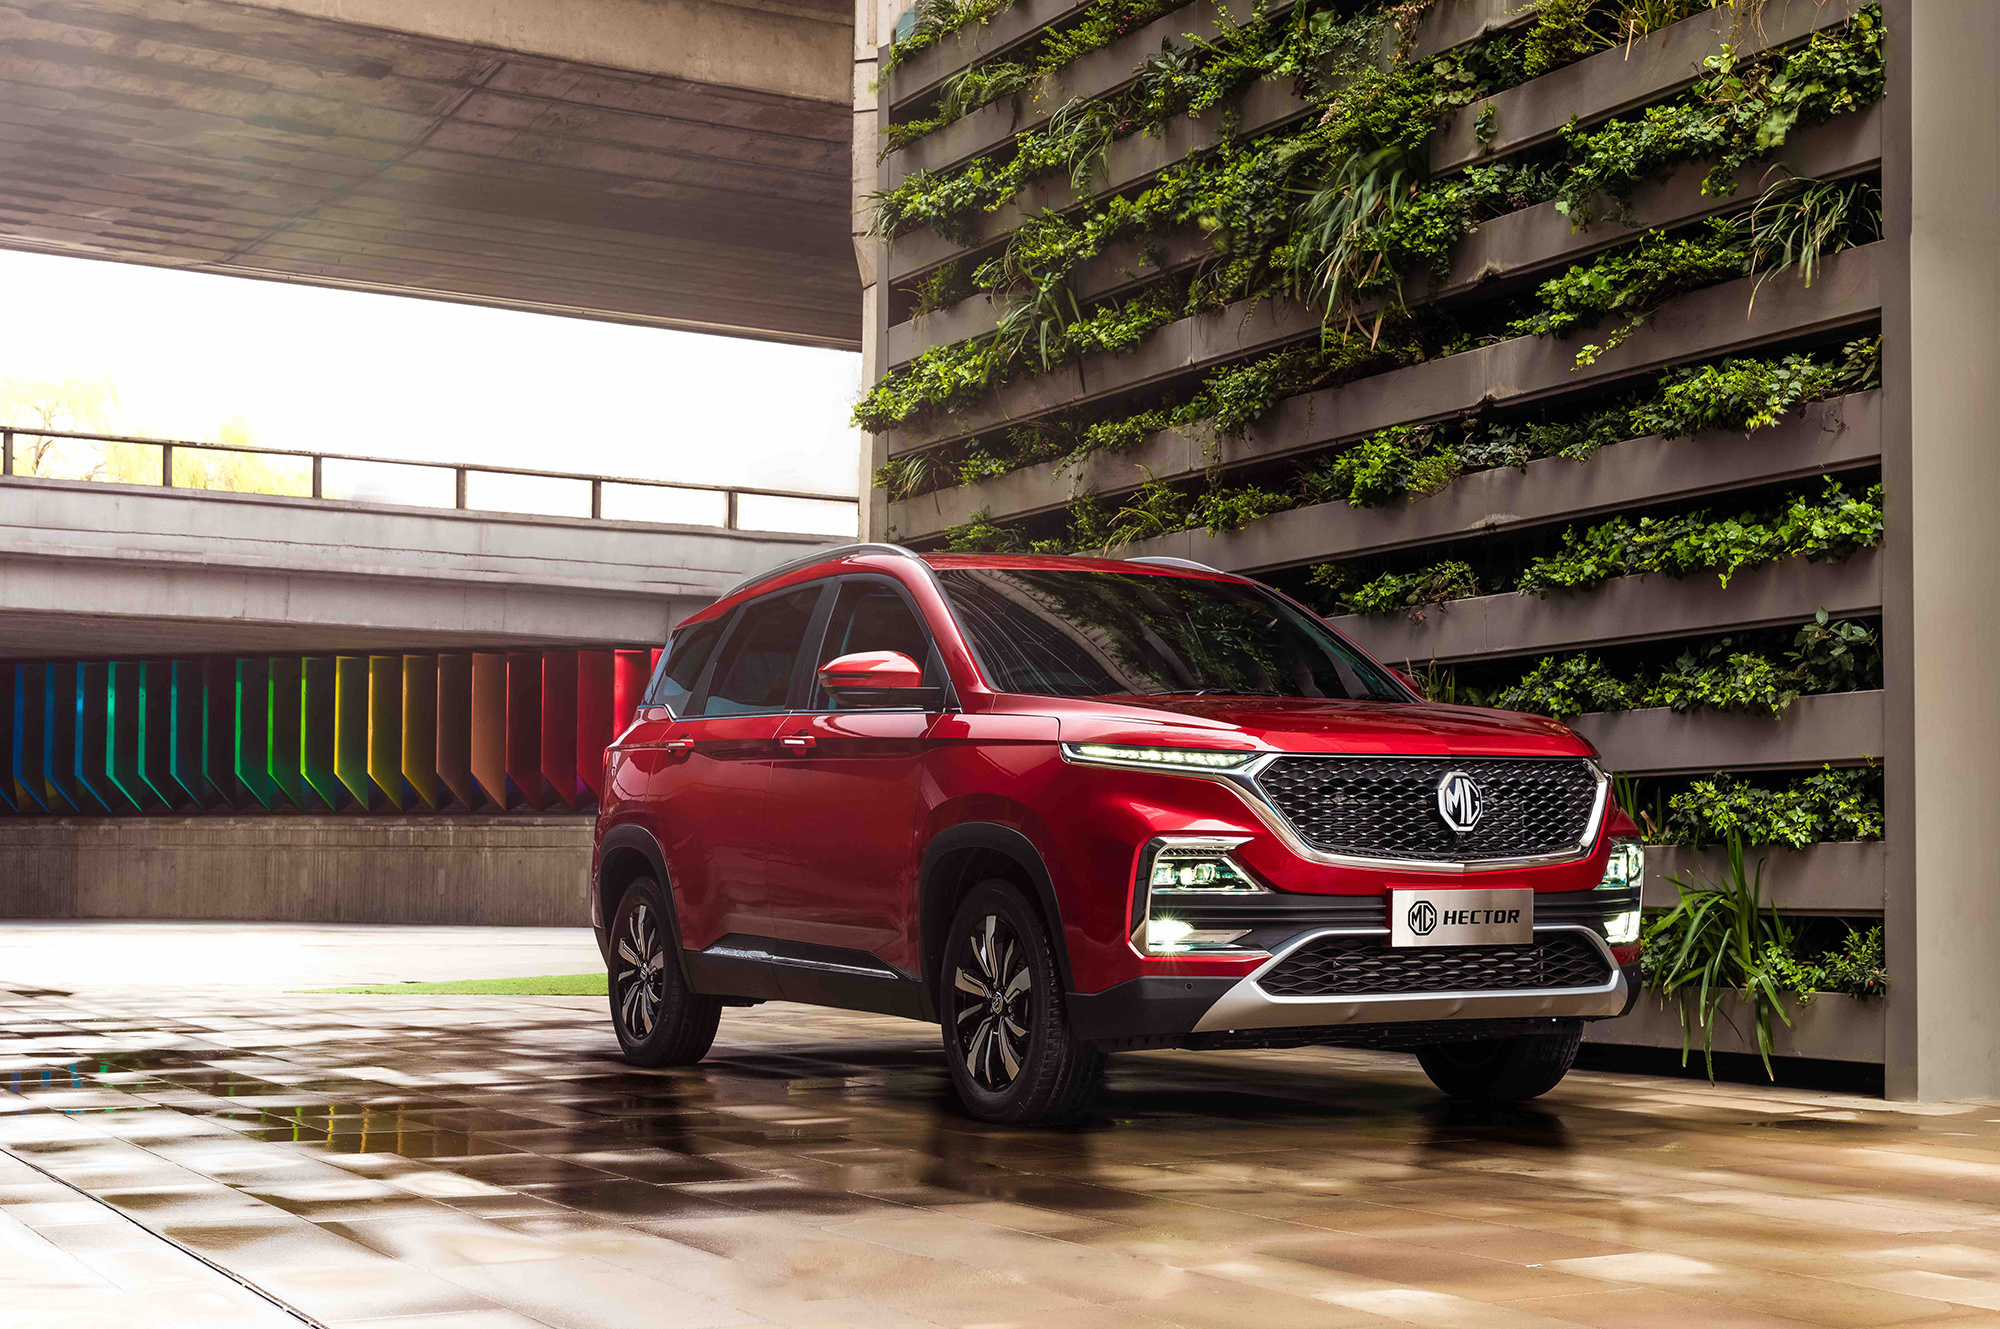 MG has launched its new mid-size SUV Hector in India